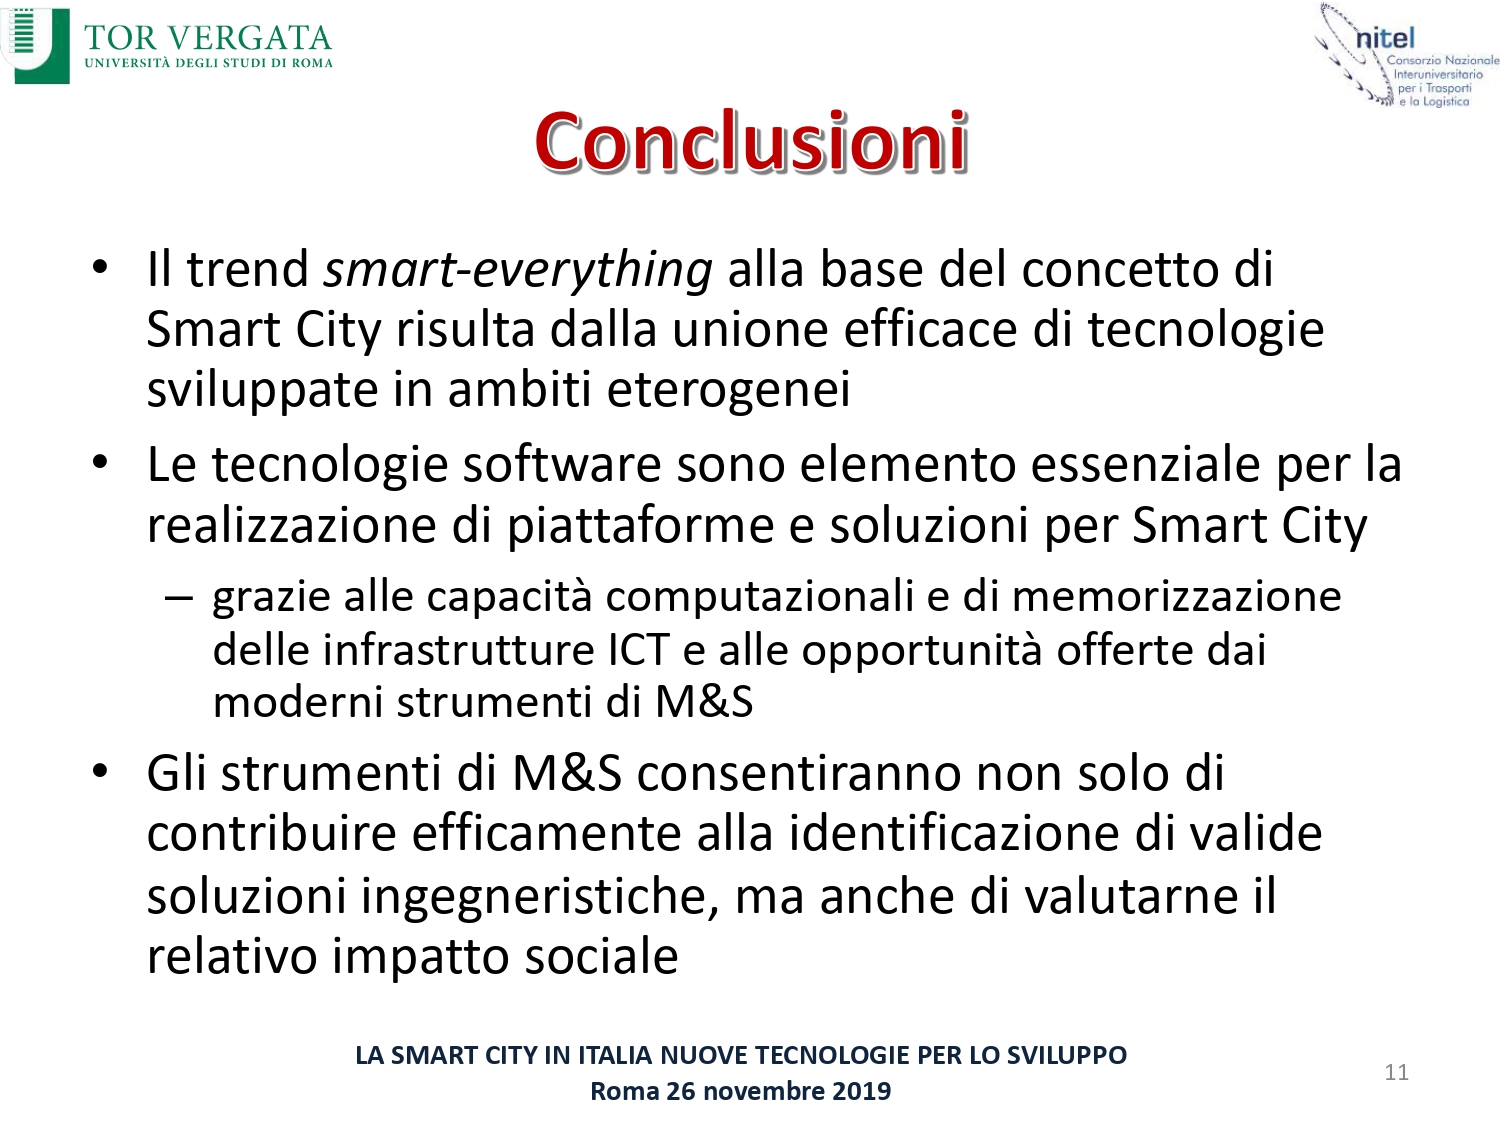 Smart city 26 novembre 2019 dambrogio_page-0010